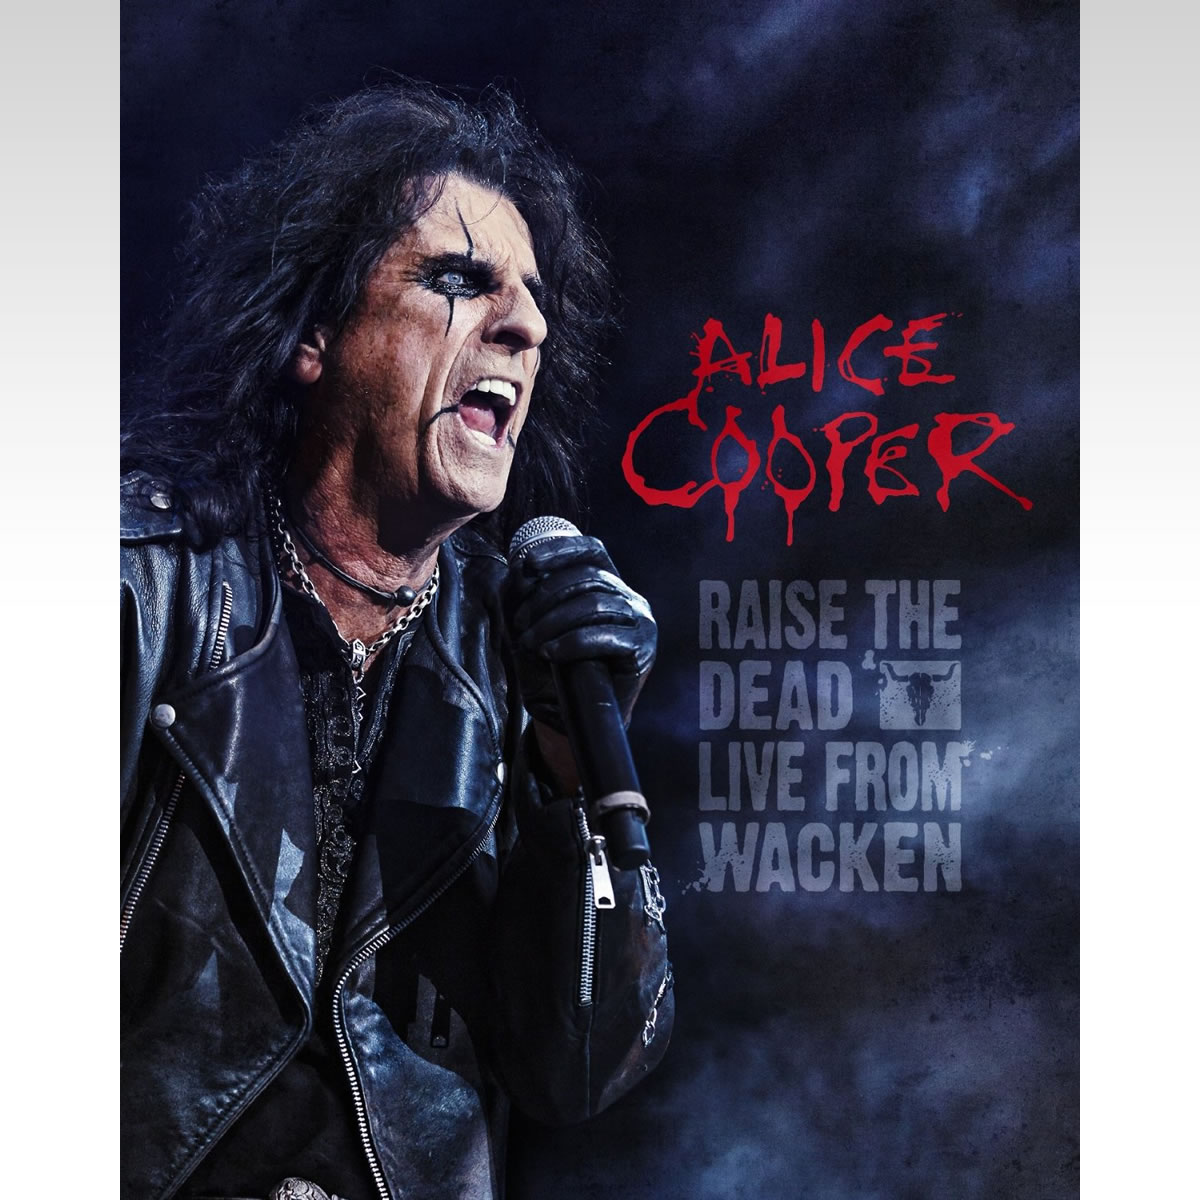 ALICE COOPER: RAISE THE DEAD - LIVE FROM WACKEN (BLU-RAY + 2 CD)